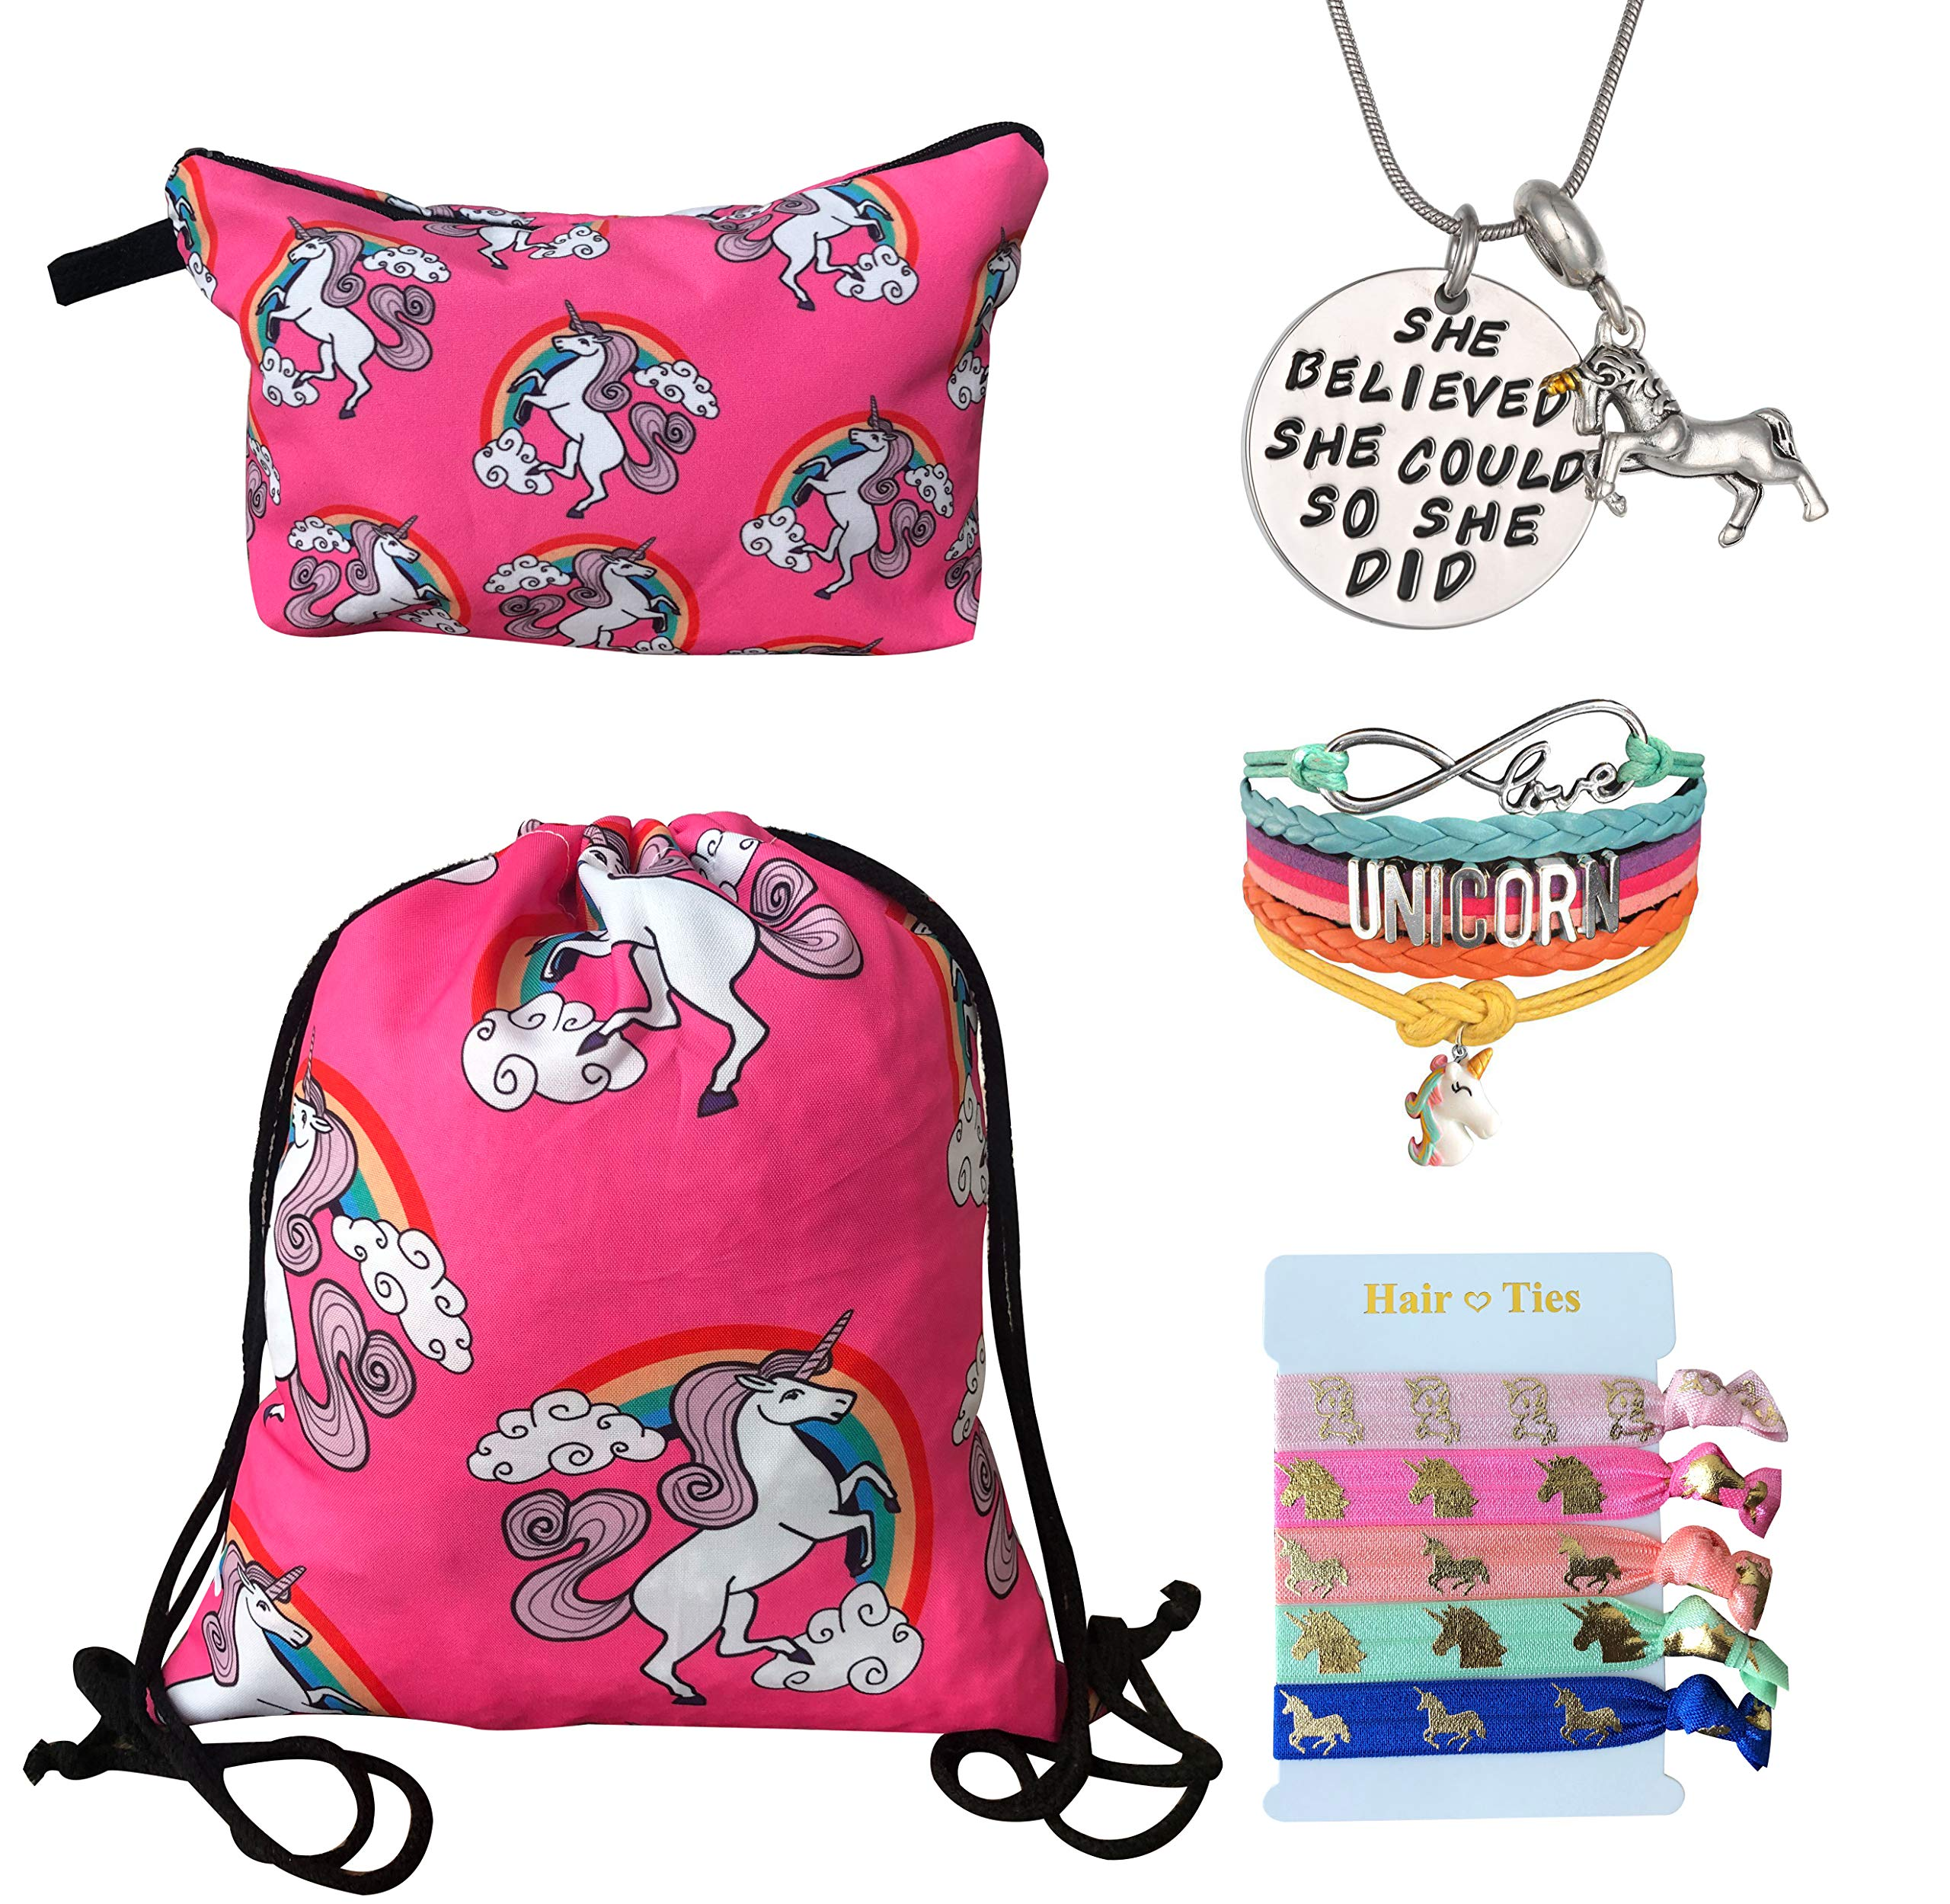 Unicorn Gifts for Girls 5 Pack - Unicorn Drawstring Backpack/Makeup Bag/Bracelet/Inspirational Necklace/Hair Ties (Pink Cute Unicorns)